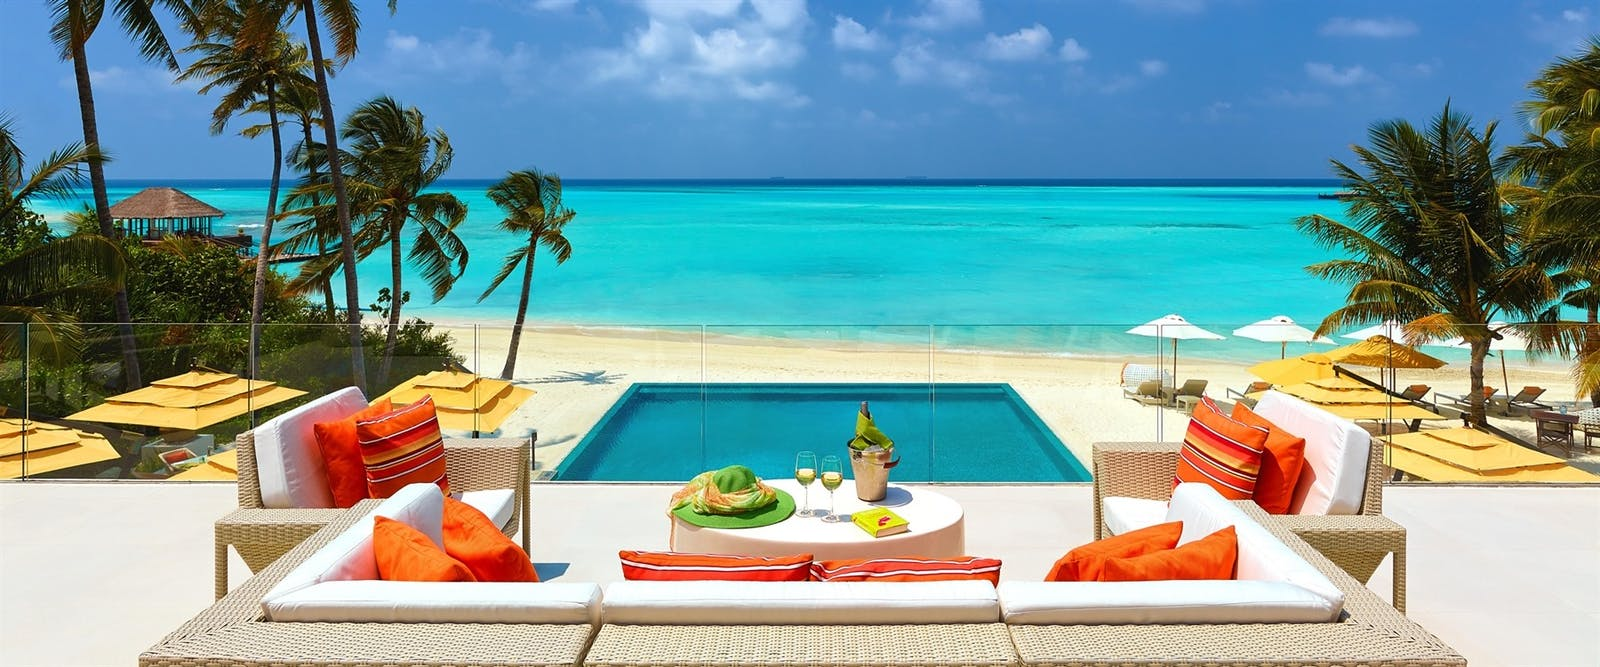 Fahrenheit Overlooking the Pool at Niyama Private Islands, Maldives, Indian Ocean